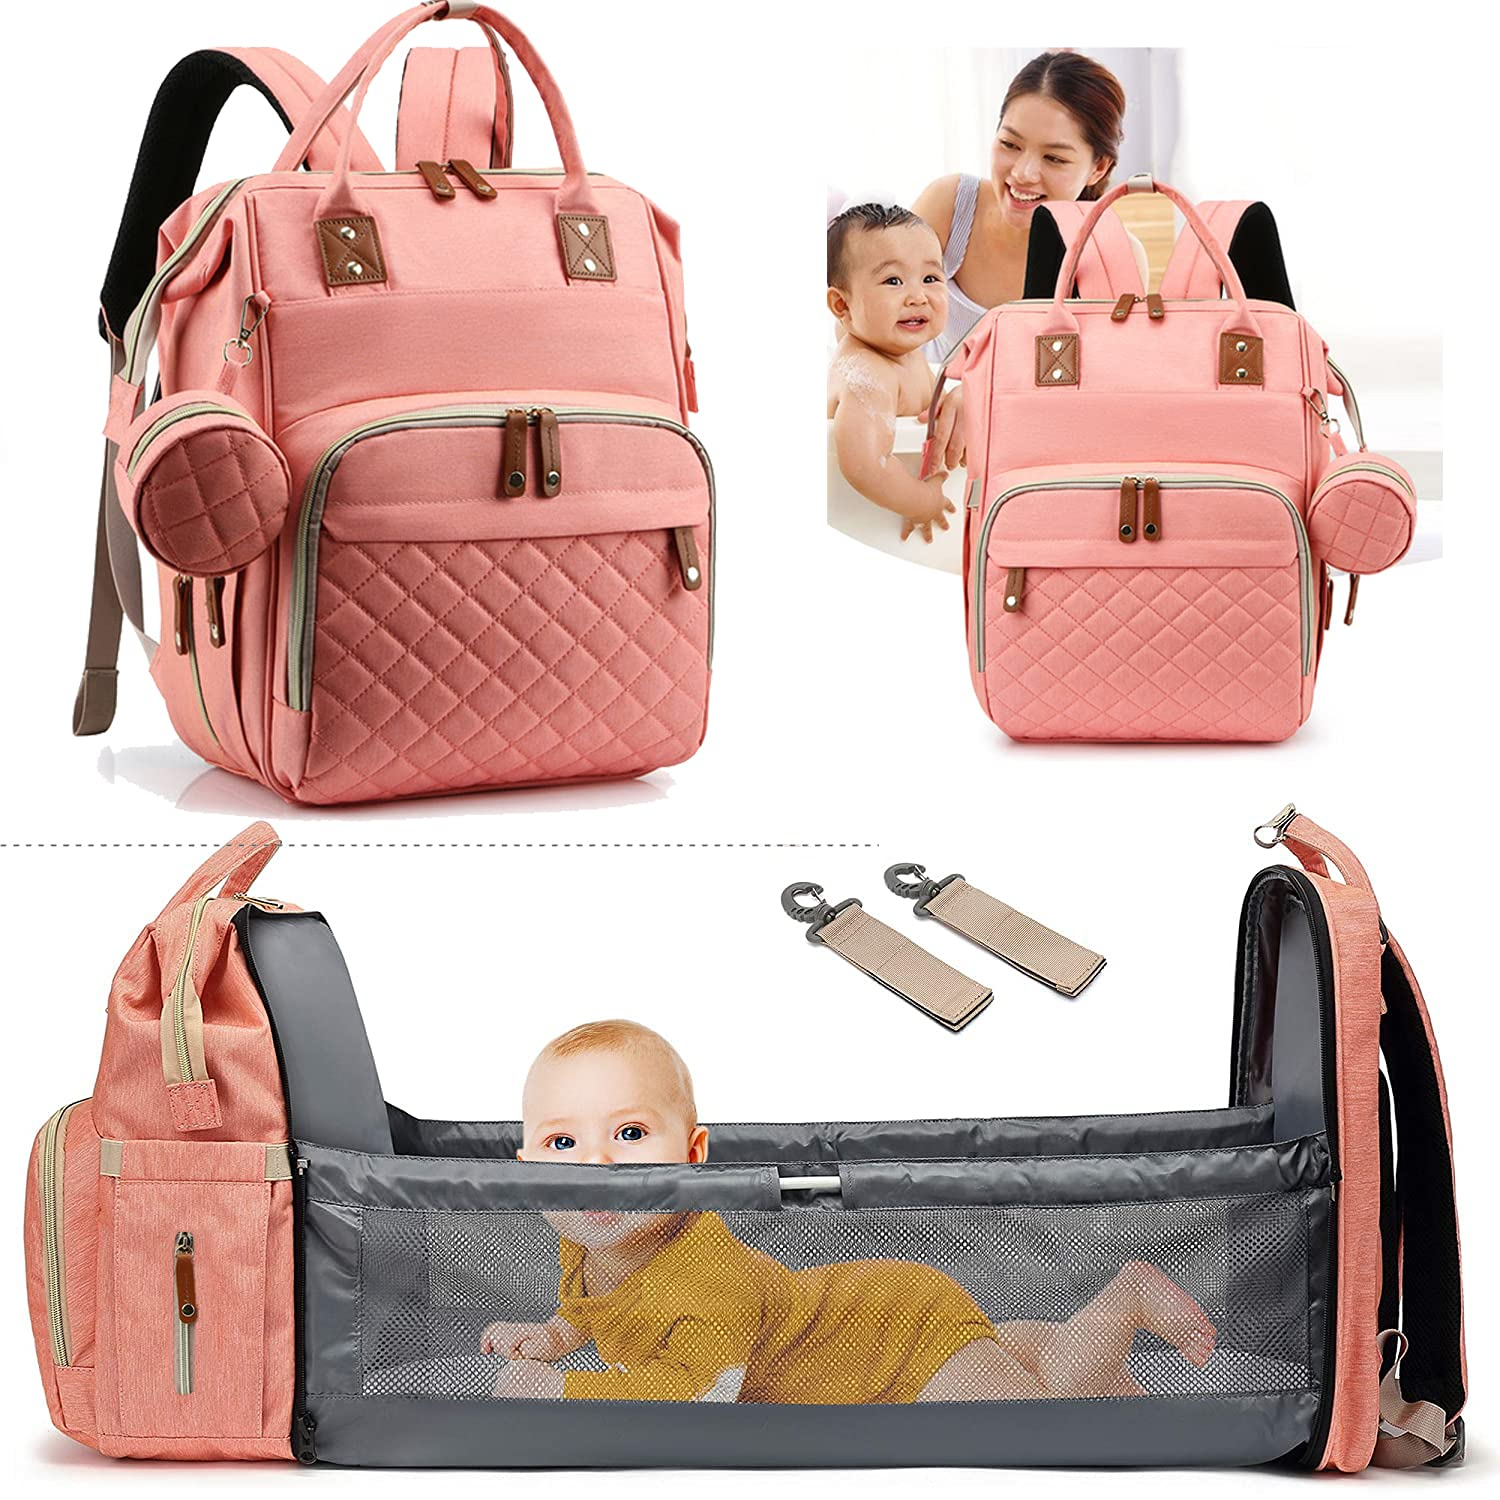 Axcone 3 in 1 Foldable Baby Diaper Bag Backpack Crib Unisex Travel Bed Nappy for Boys & Girls Waterproof Stroller Straps Large Capacity Pink